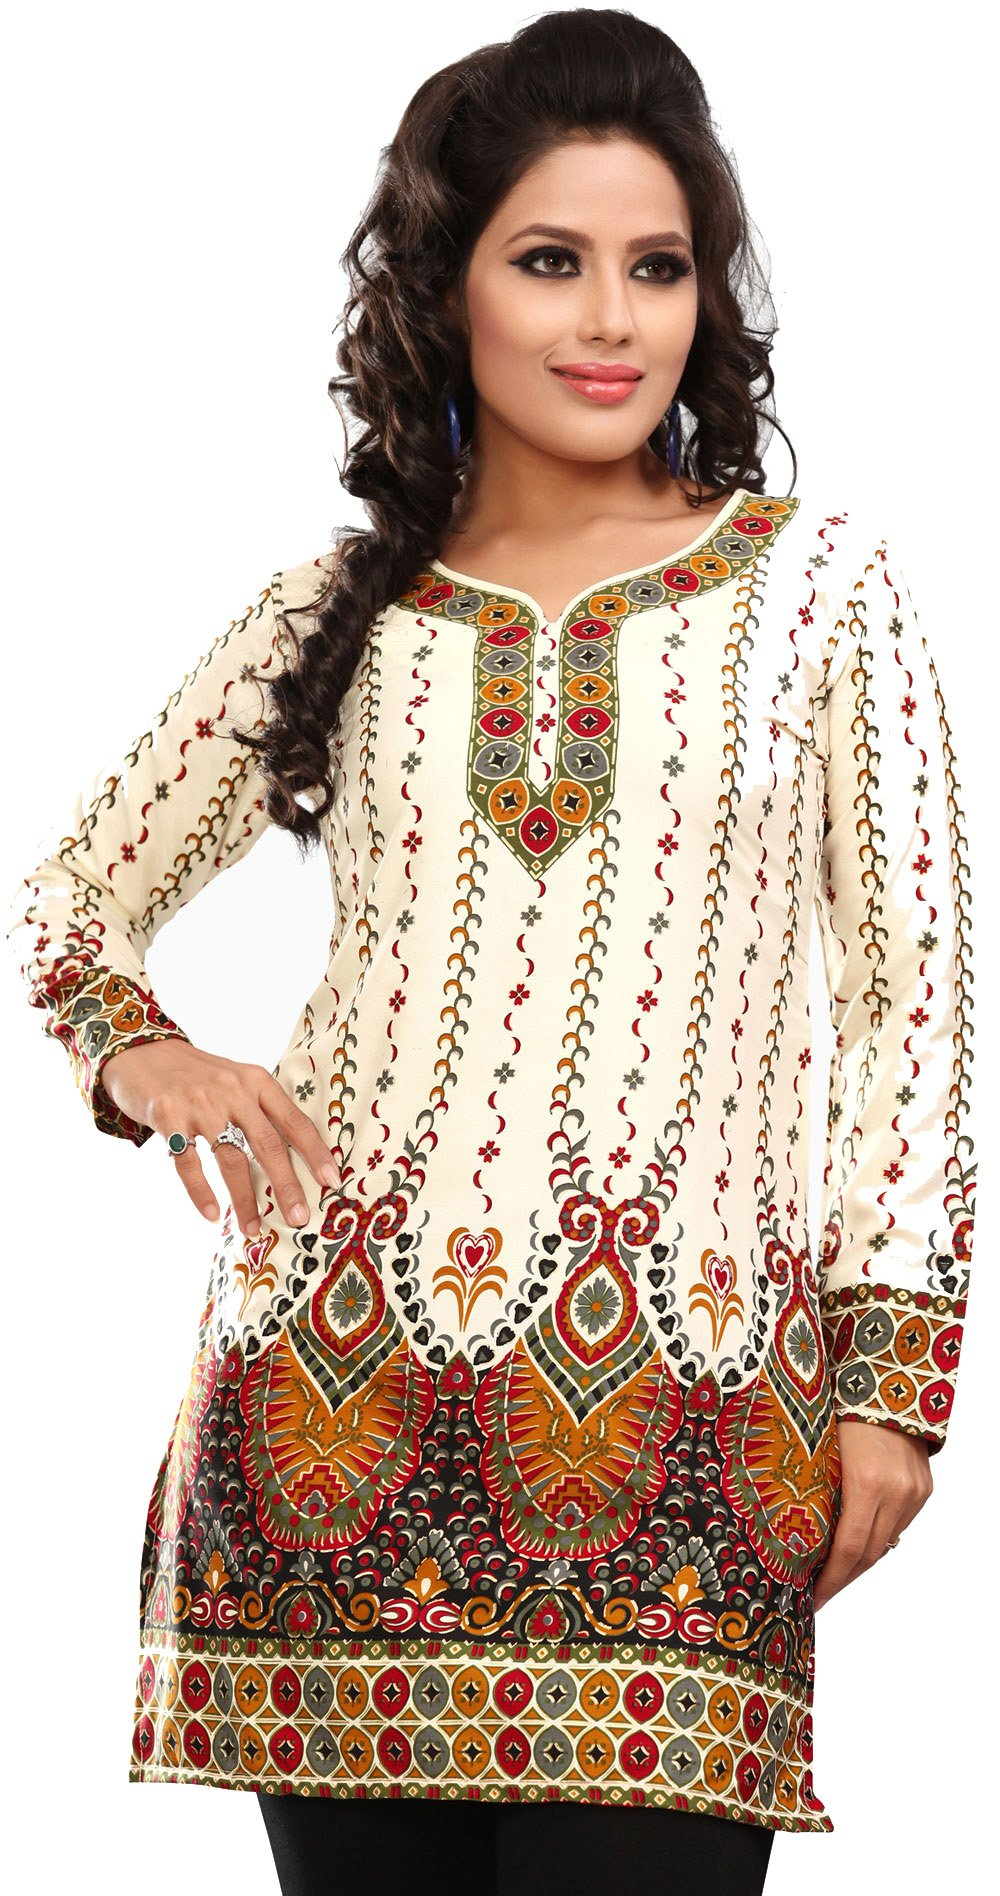 Women's Indian Kurti Top Tunic Printed Blouse India Clothes (Off White, M)